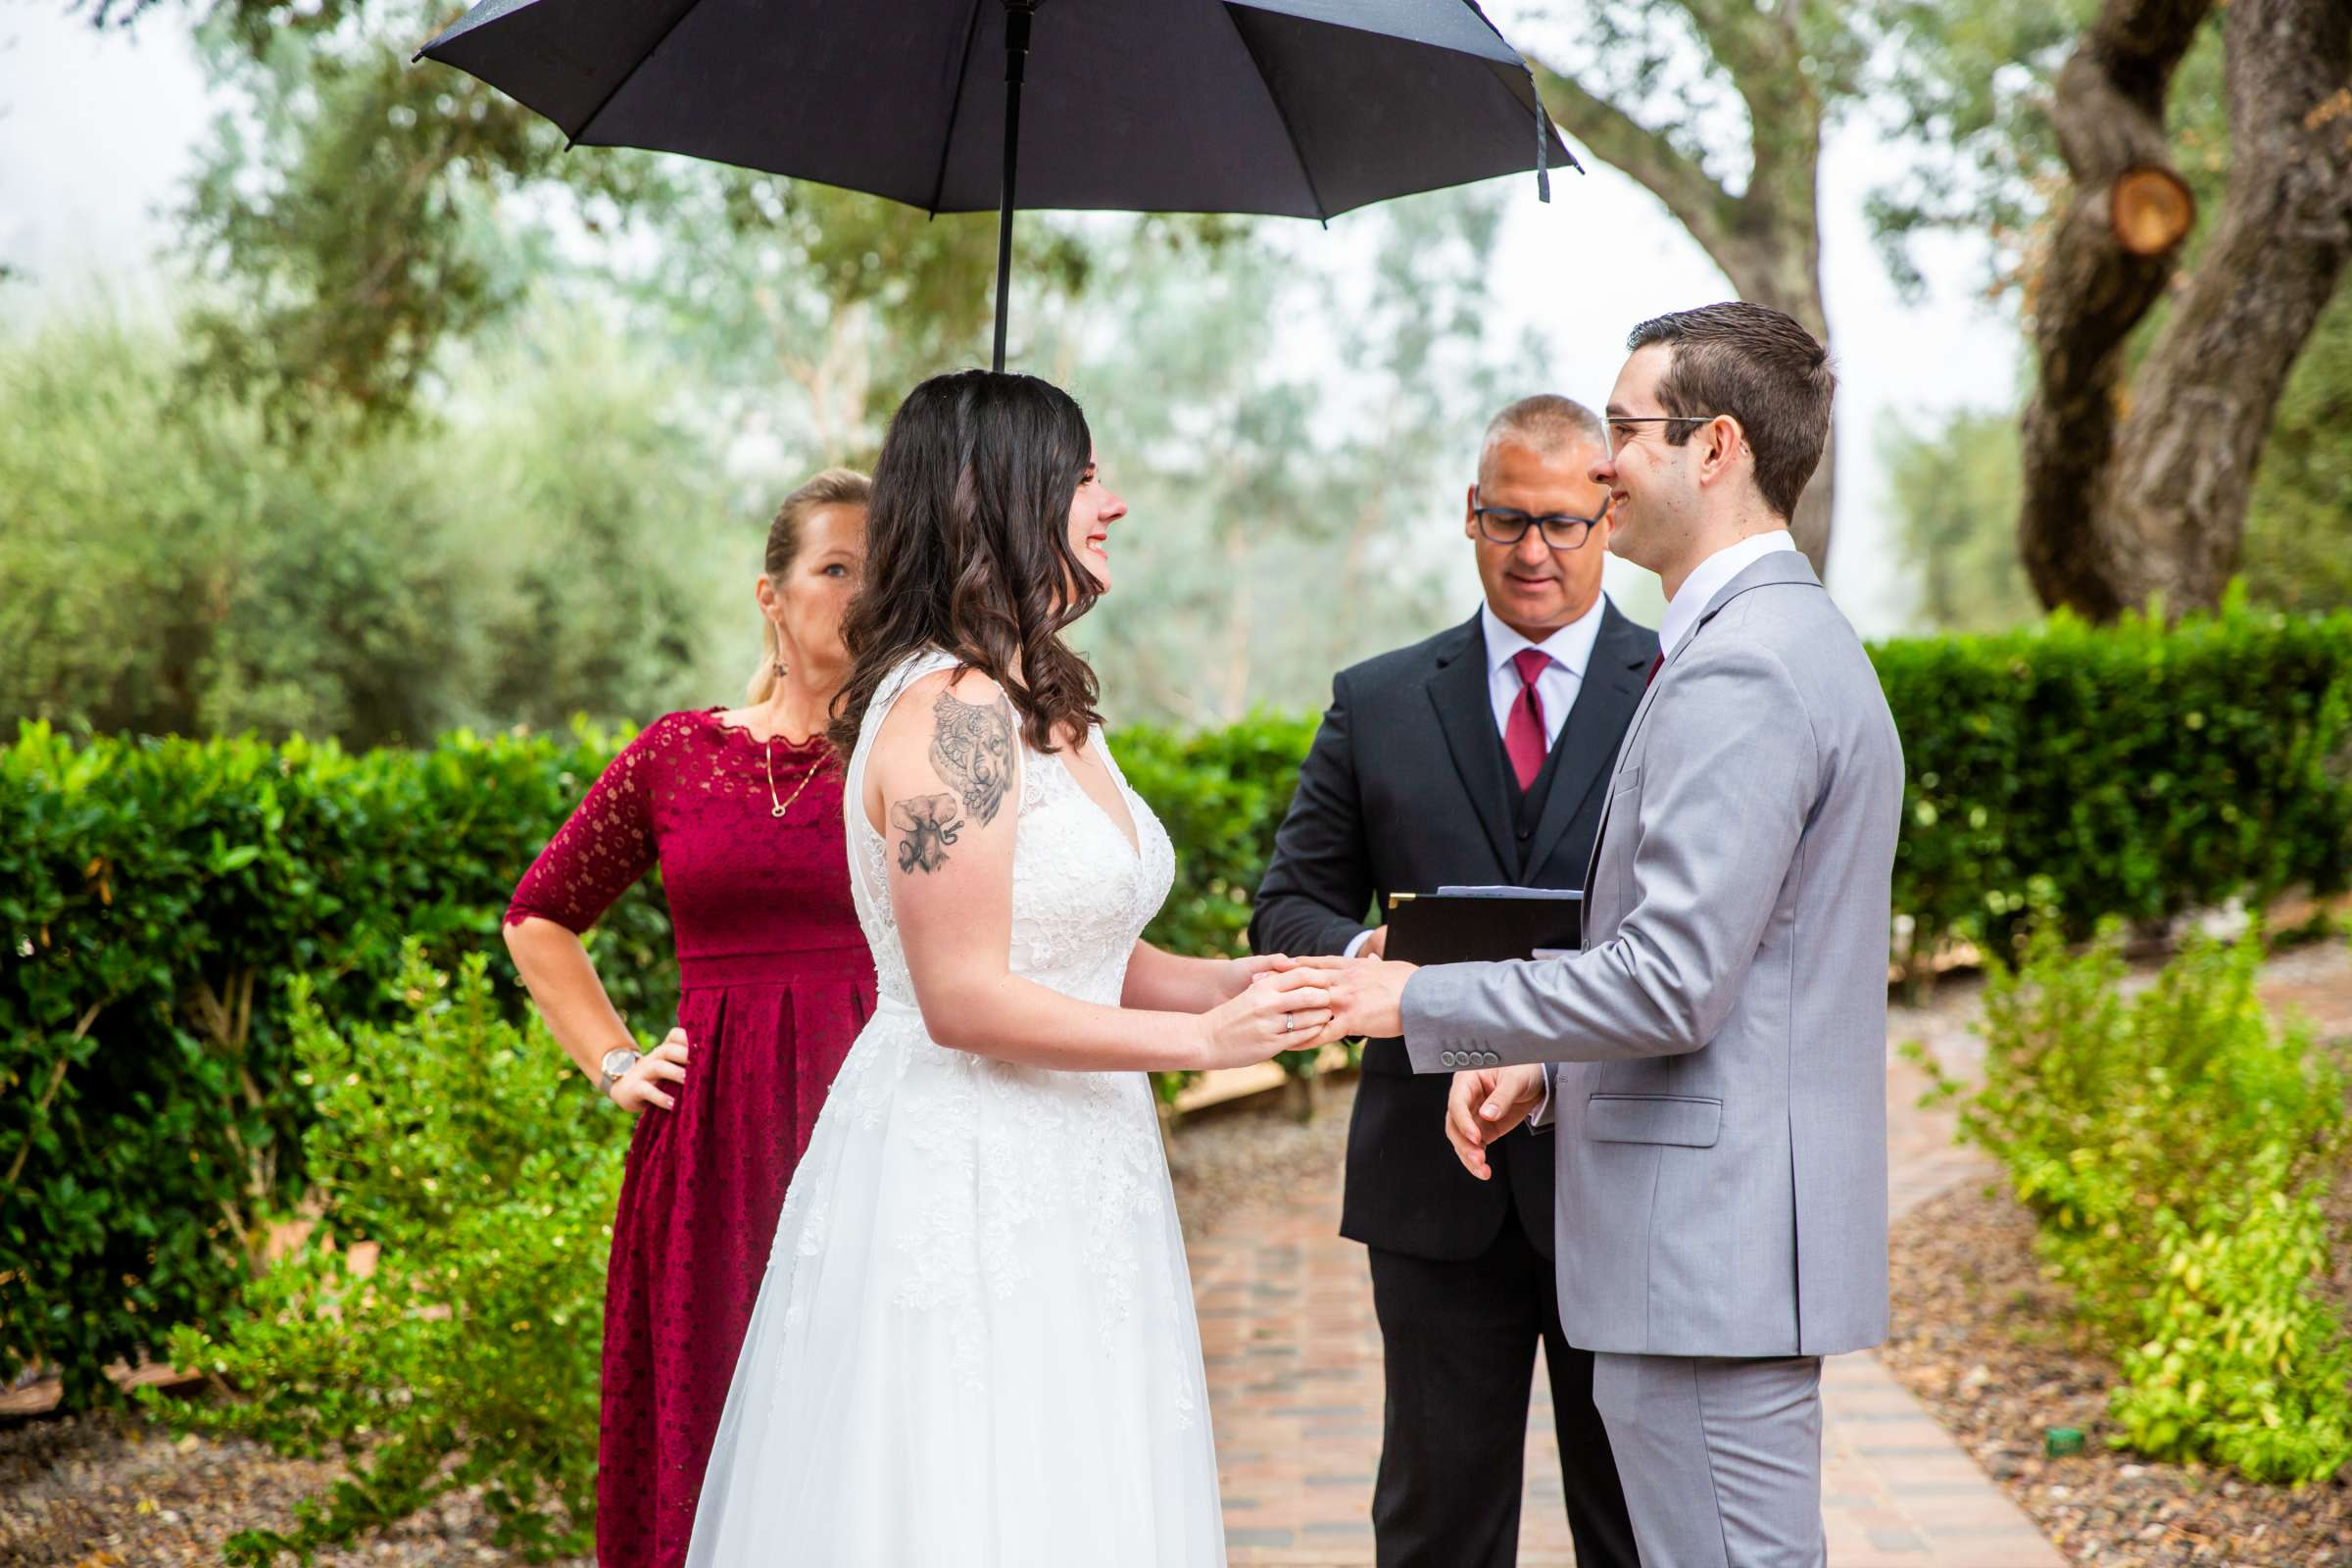 Mt Woodson Castle Wedding, Valerie and Ian Wedding Photo #70 by True Photography